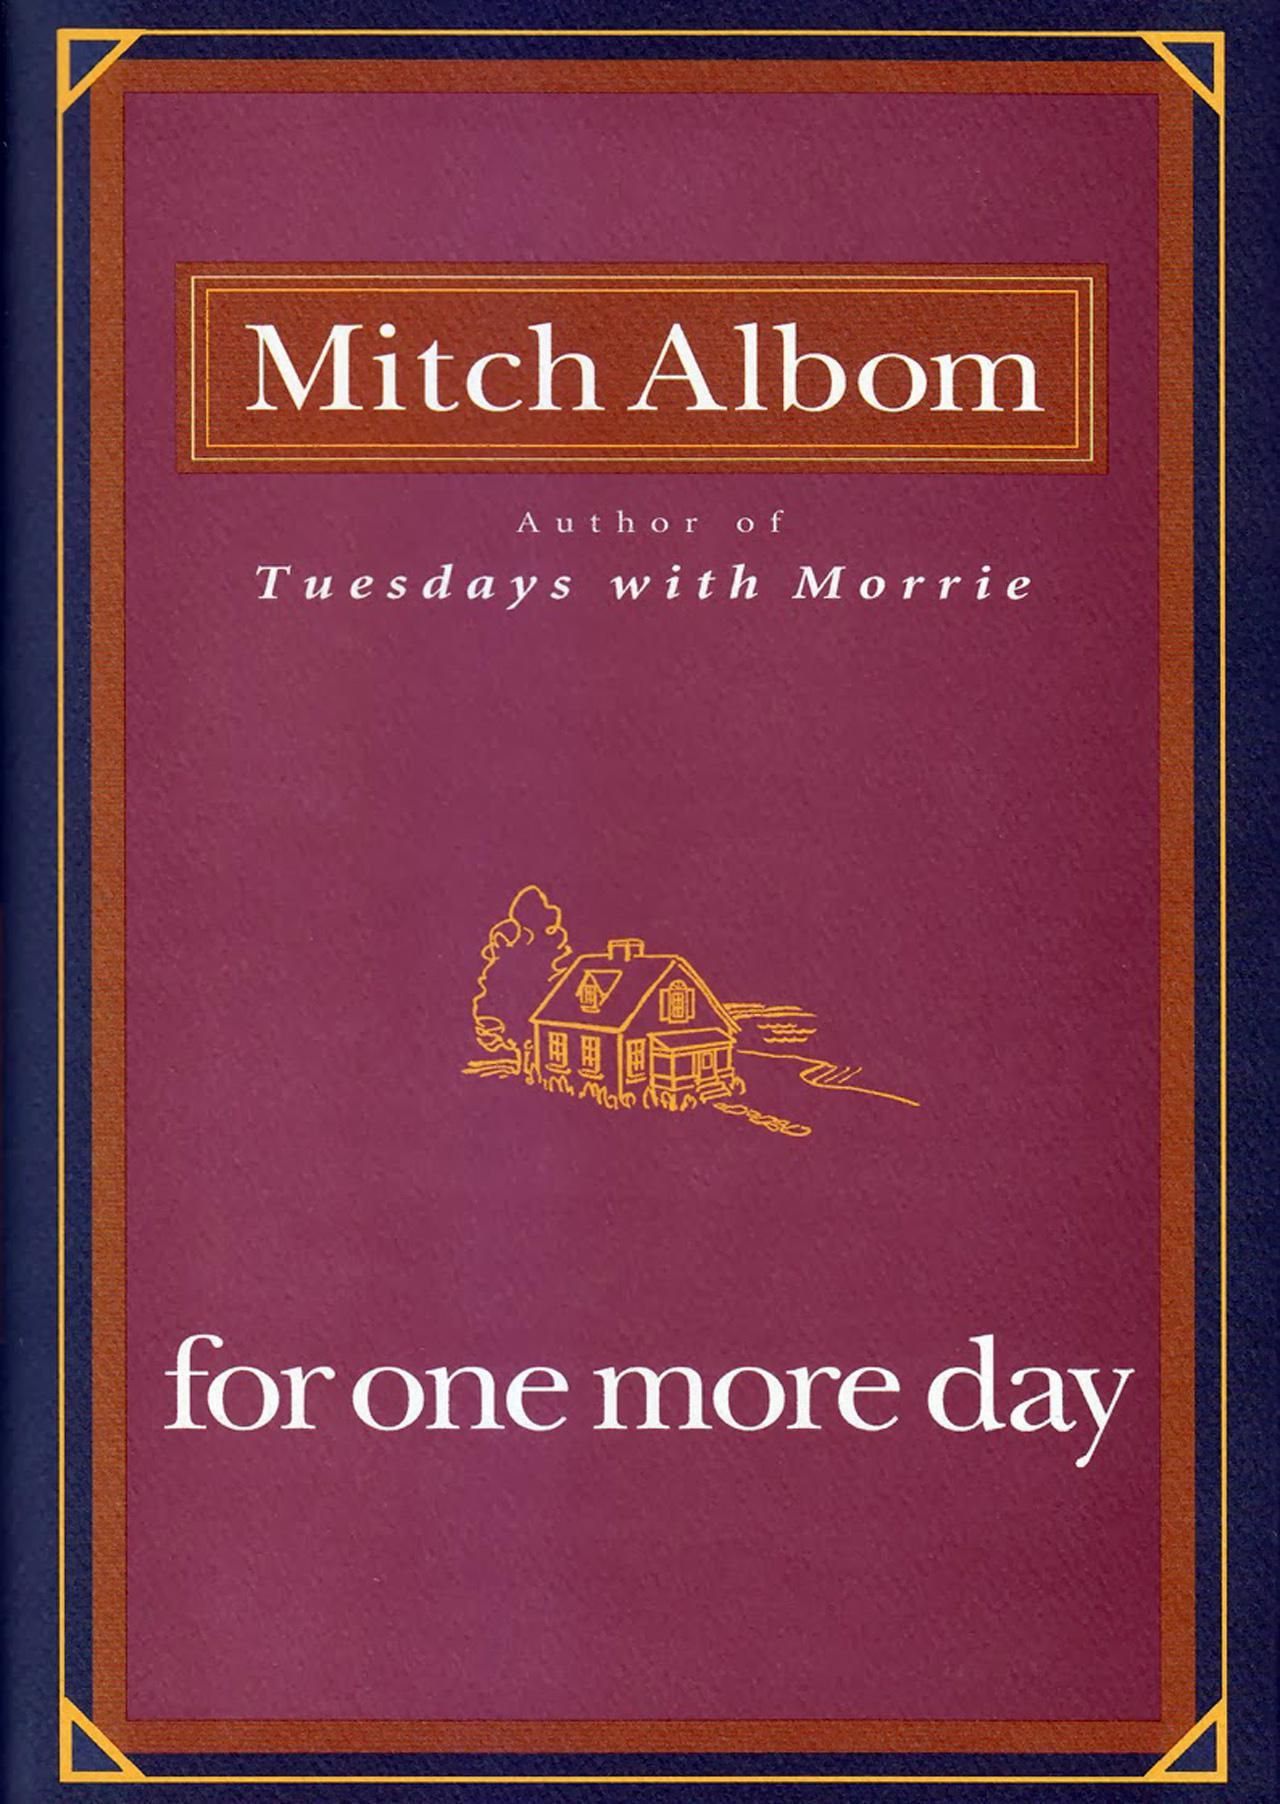 Book By Phyllis Vega Trish Macgregor: For One More Day By Mitch Albom